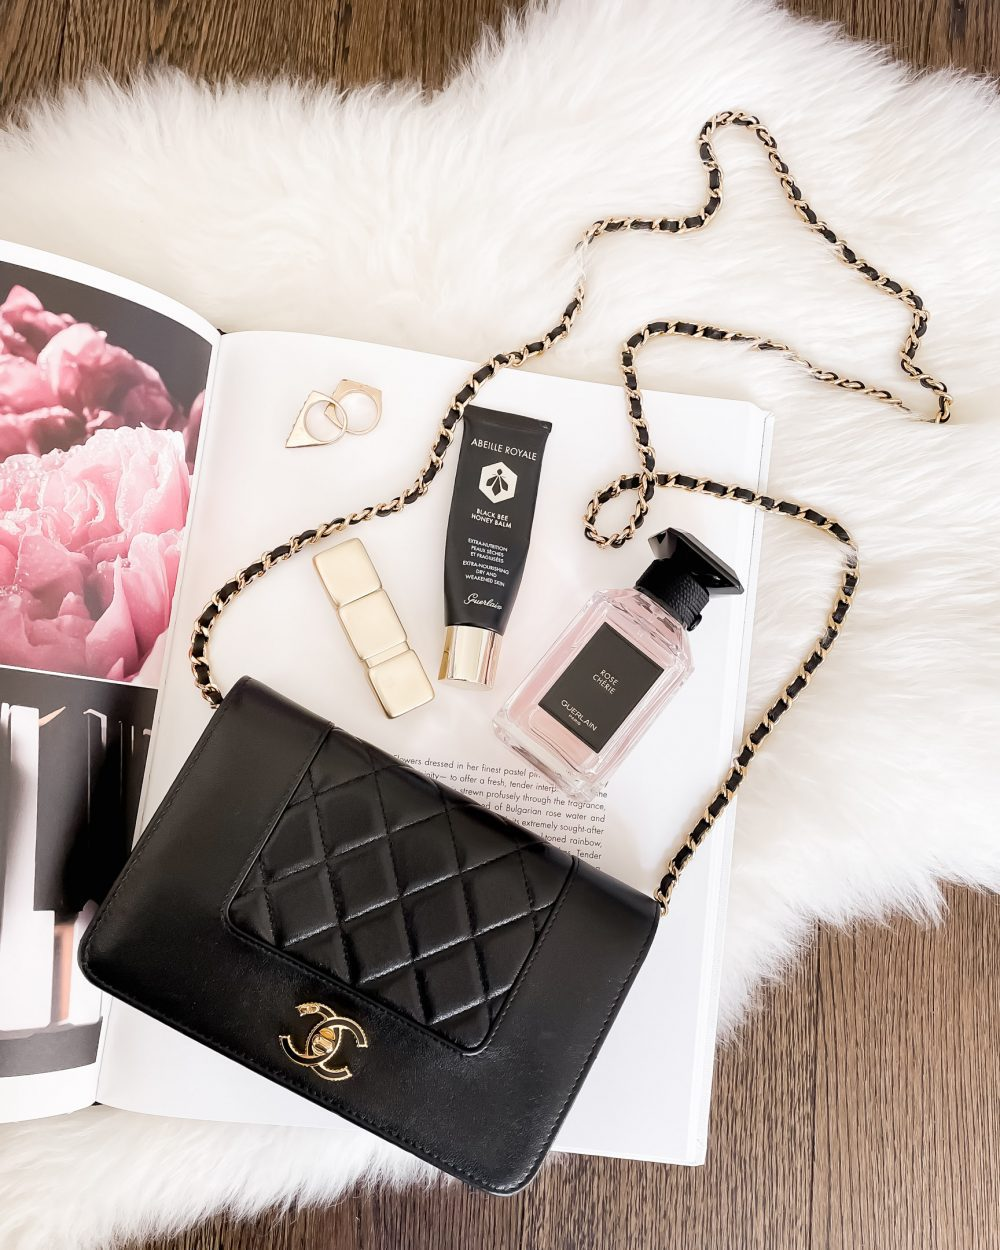 My first Chanel bag! This is a vintage Mademoiselle wallet on chain along with some of my favourite Guerlain beauty products. For tips on buying vintage Chanel bags visit my fashion and lifestyle blog yesmissy.com